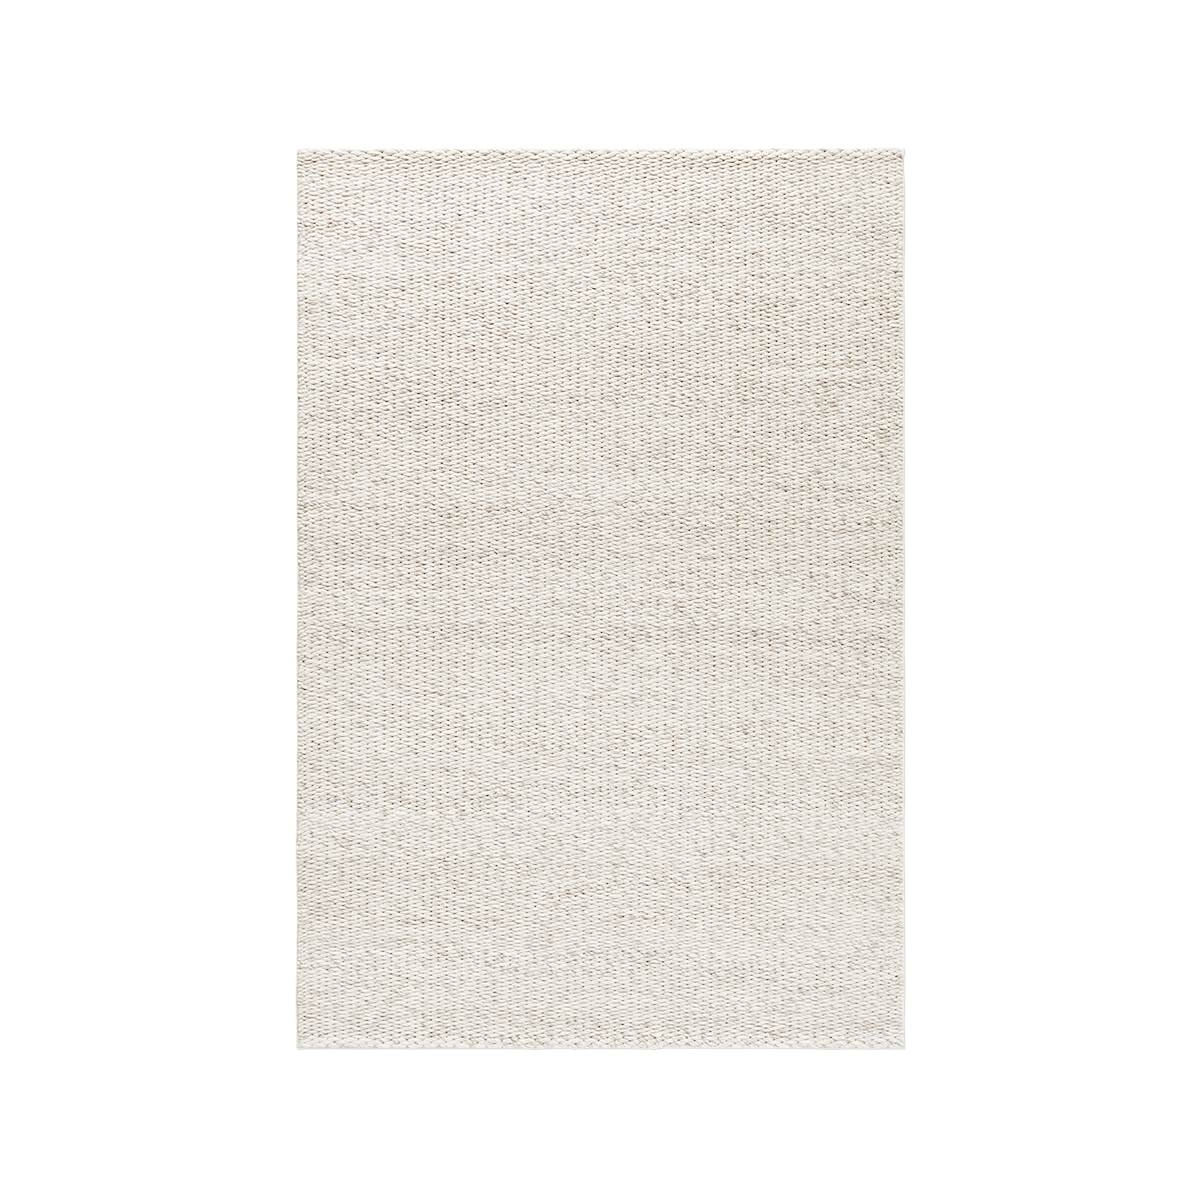 Product image of the chunky flatweave rug Dunes in the color Sand Mix. It has a thick, braided texture.